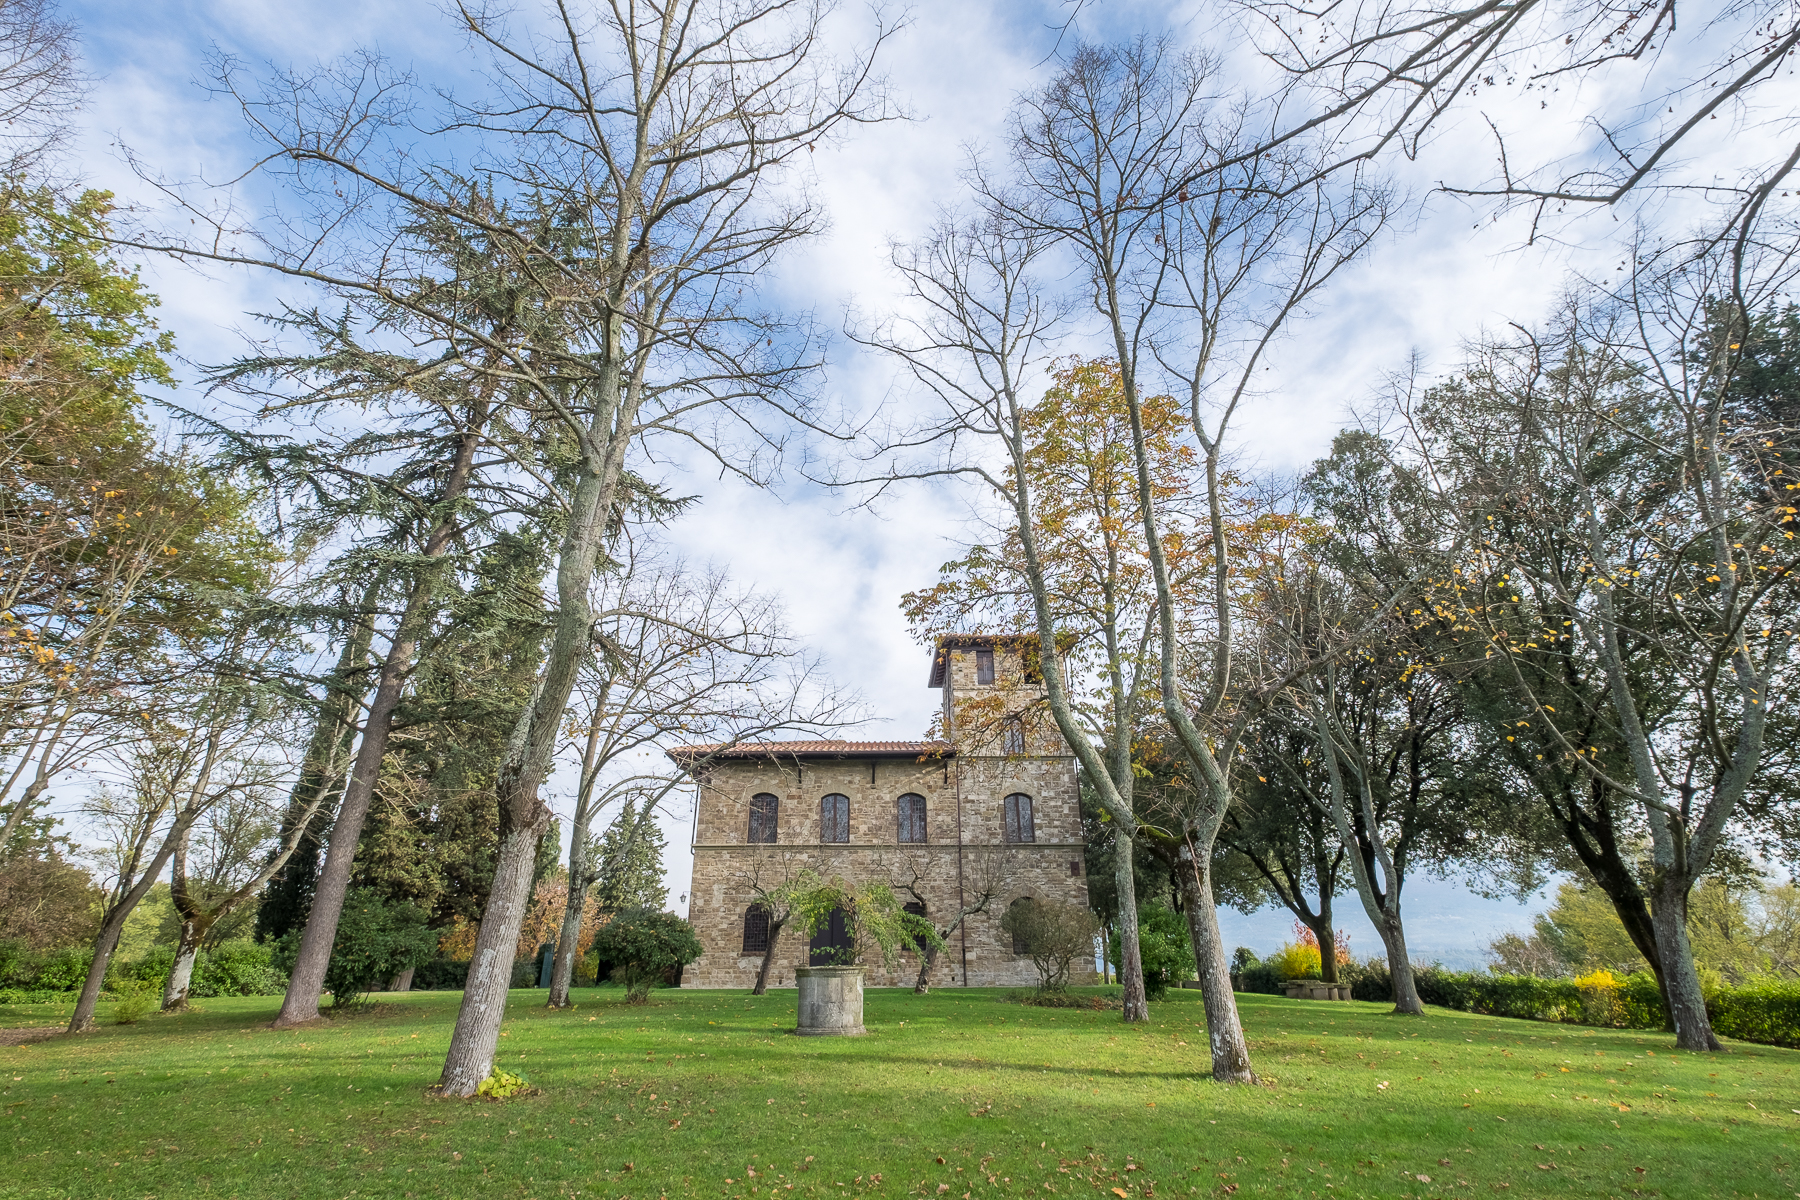 Multi-Family Home for Sale at Splendid Hotel de Charme in the Tuscan countryside Firenze Firenze, Florence 50100 Italy